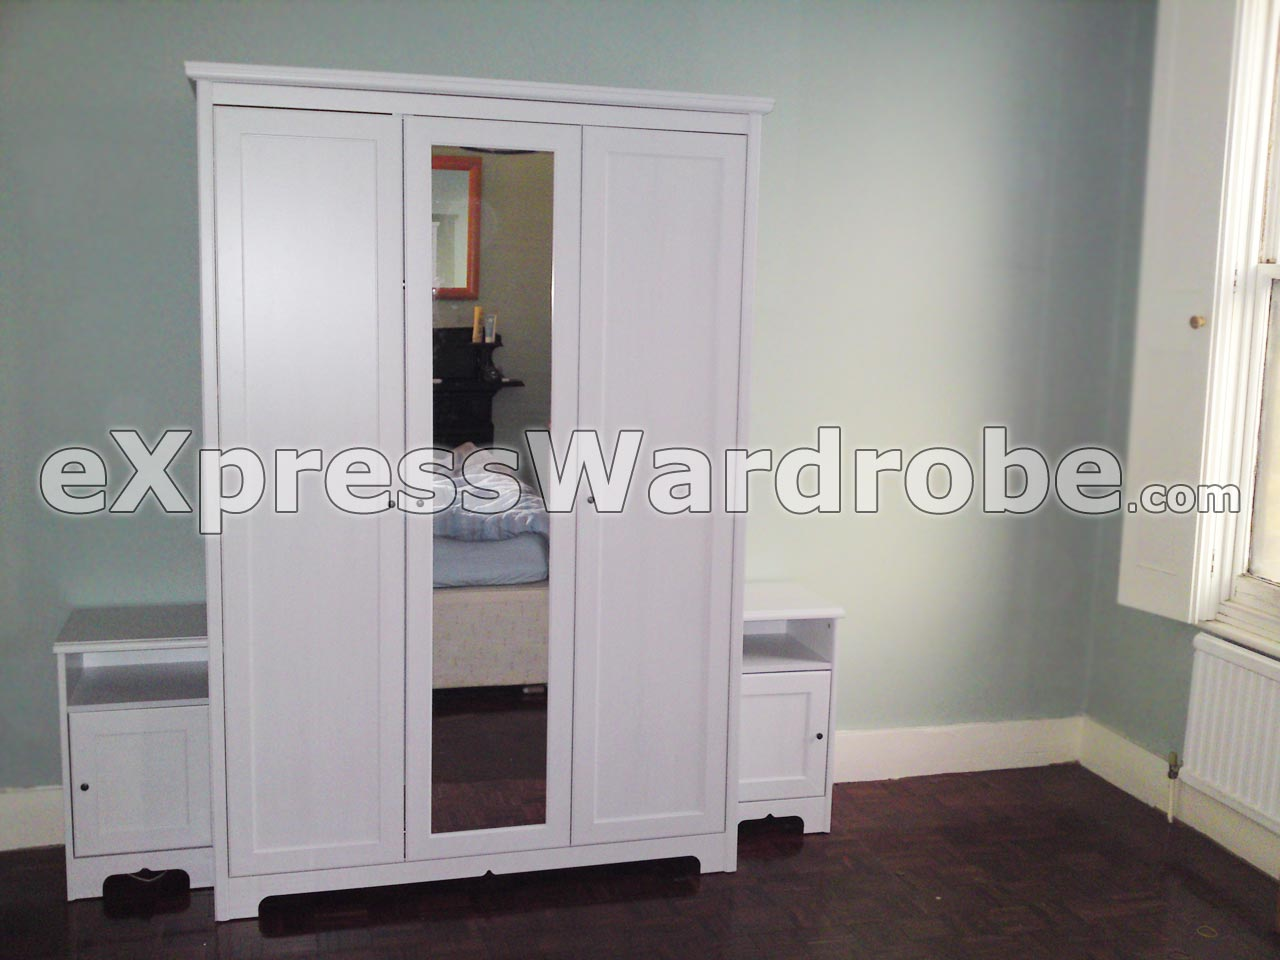 Ikea Dombas Wardrobe Closet ~   IKEA Bedroom Wardrobe Closet besides IKEA Bedroom Wardrobe Closet on